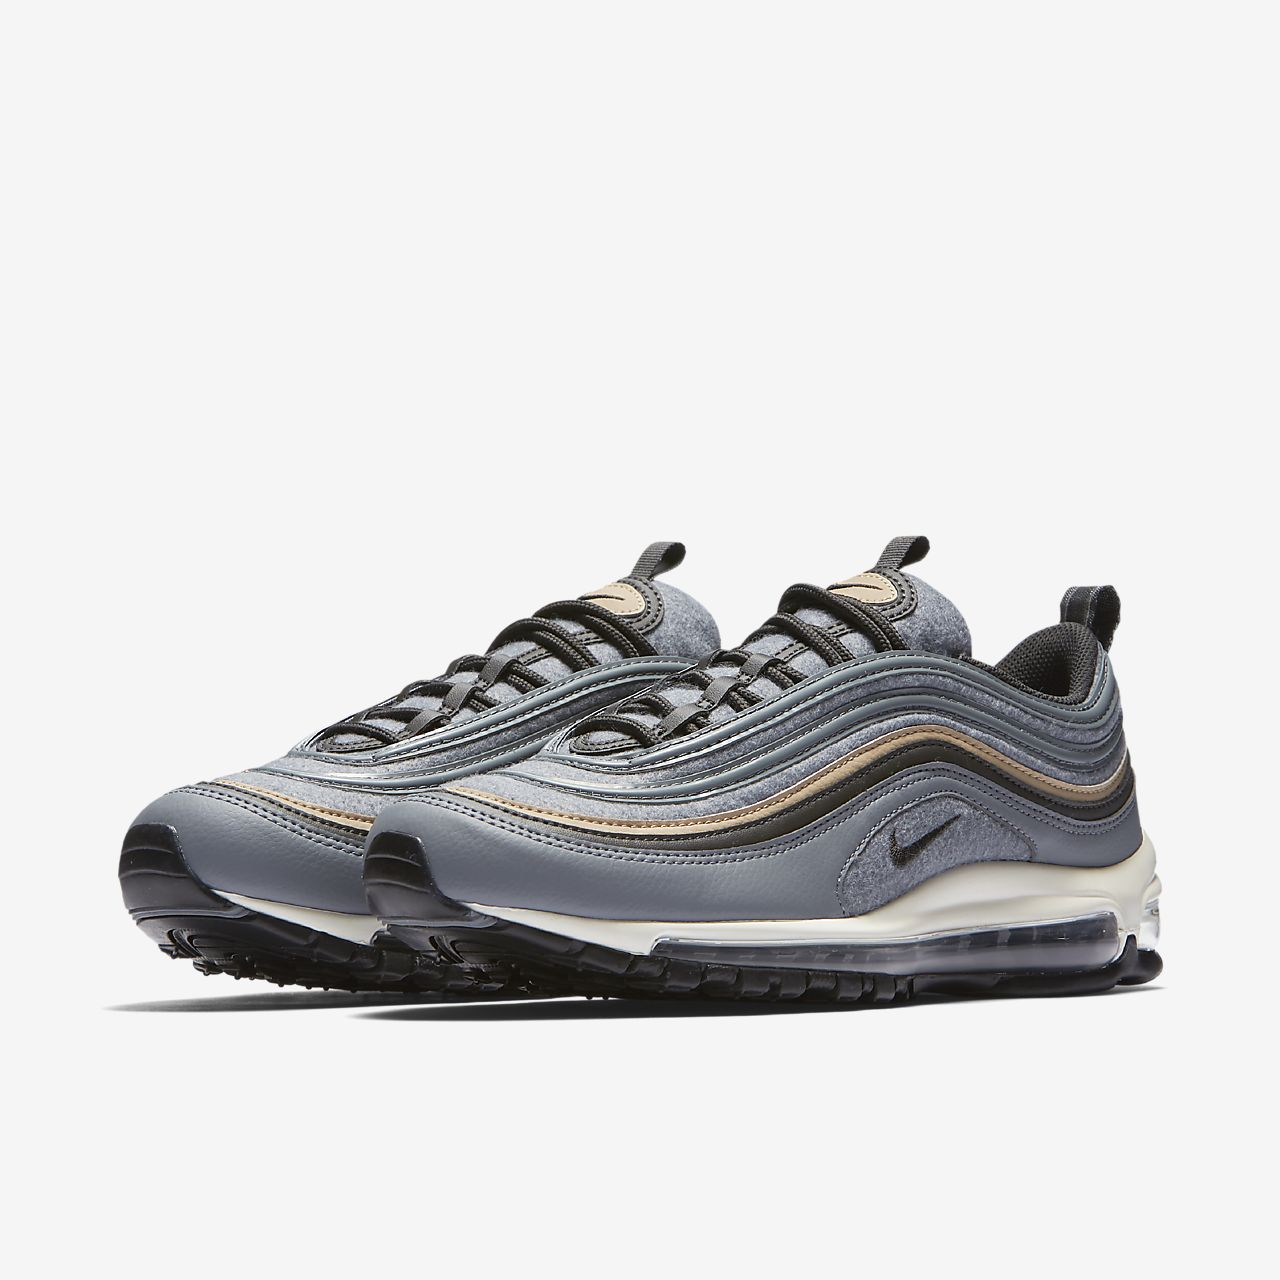 daa54d53854 Air Max 97 Premium Air Max 97 Undefeated